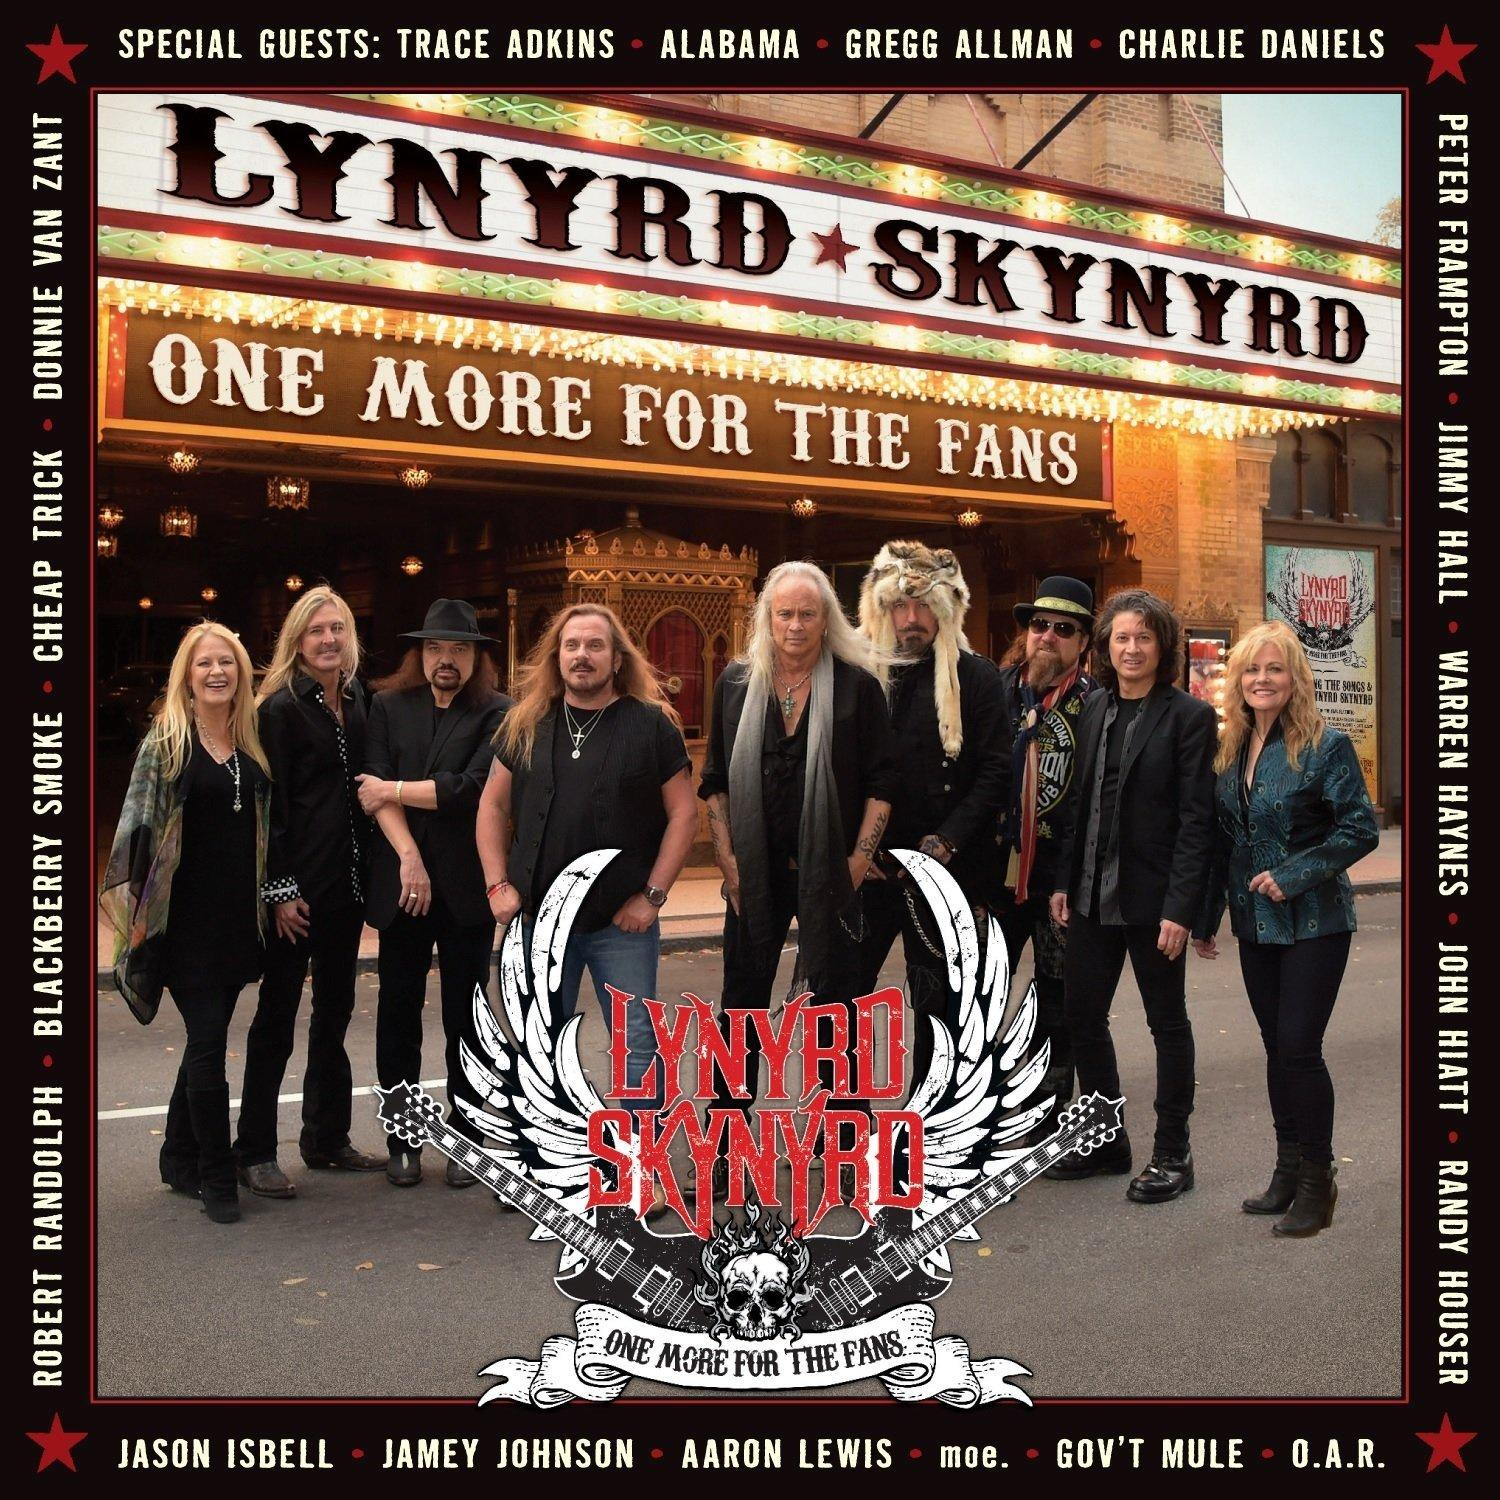 1 More Than 2 1 More Than 2: Lynyrd Skynyrd - One More For The Fans (2CD/DVD)